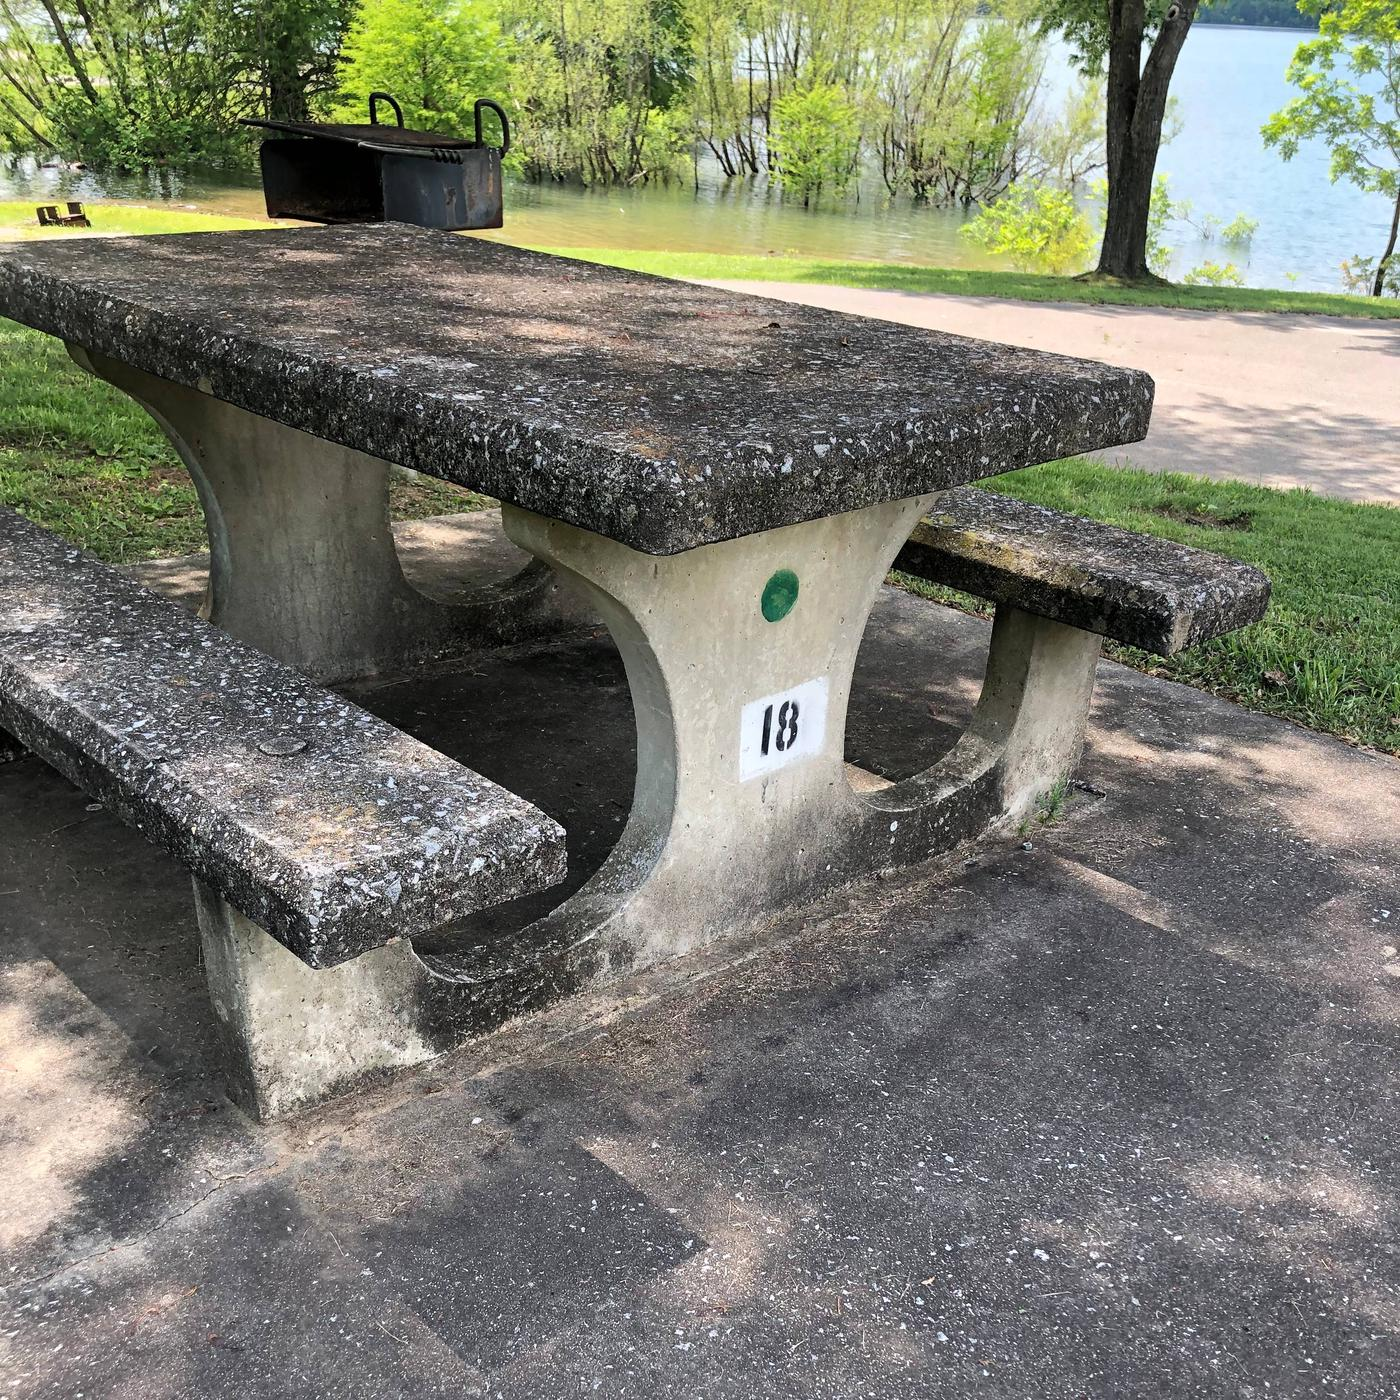 OBEY RIVER PARK SITE # 18 CONCRETE TABLE WITH NUMBEROBEY RIVER PARK SITE # 18